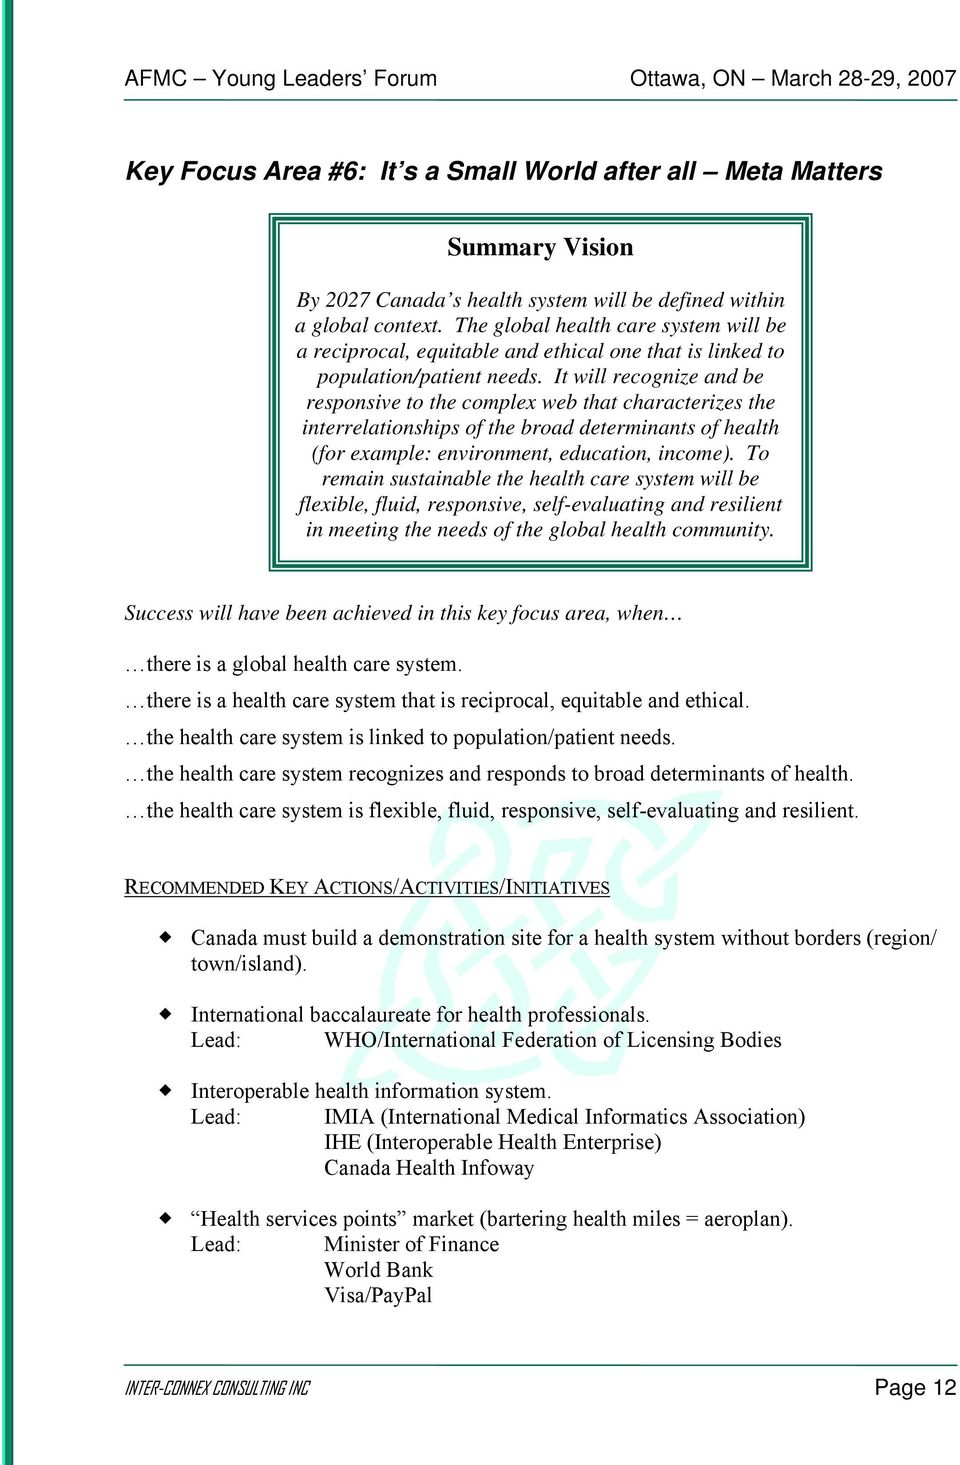 It will recognize and be responsive to the complex web that characterizes the interrelationships of the broad determinants of health (for example: environment, education, income).